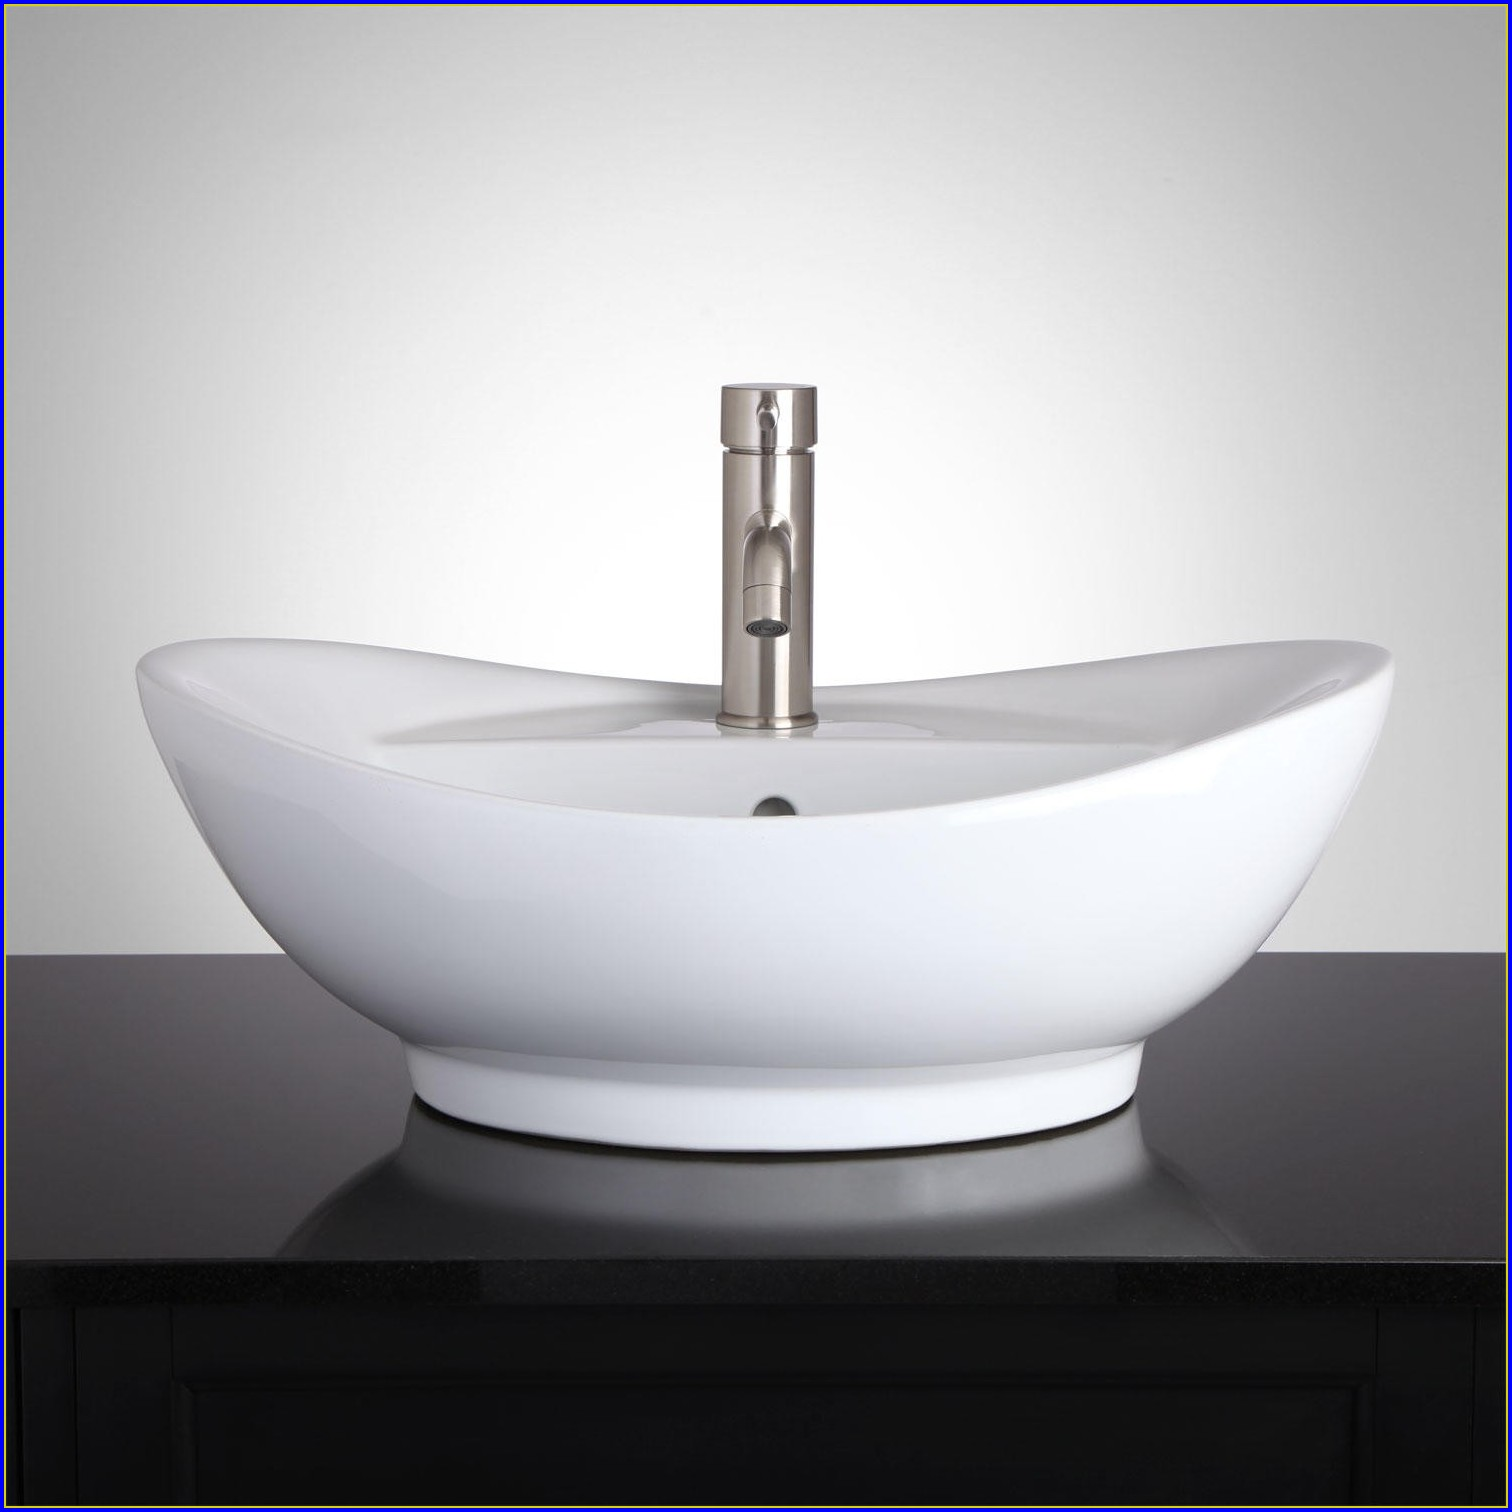 Bathroom Vessel Sinks And Faucets